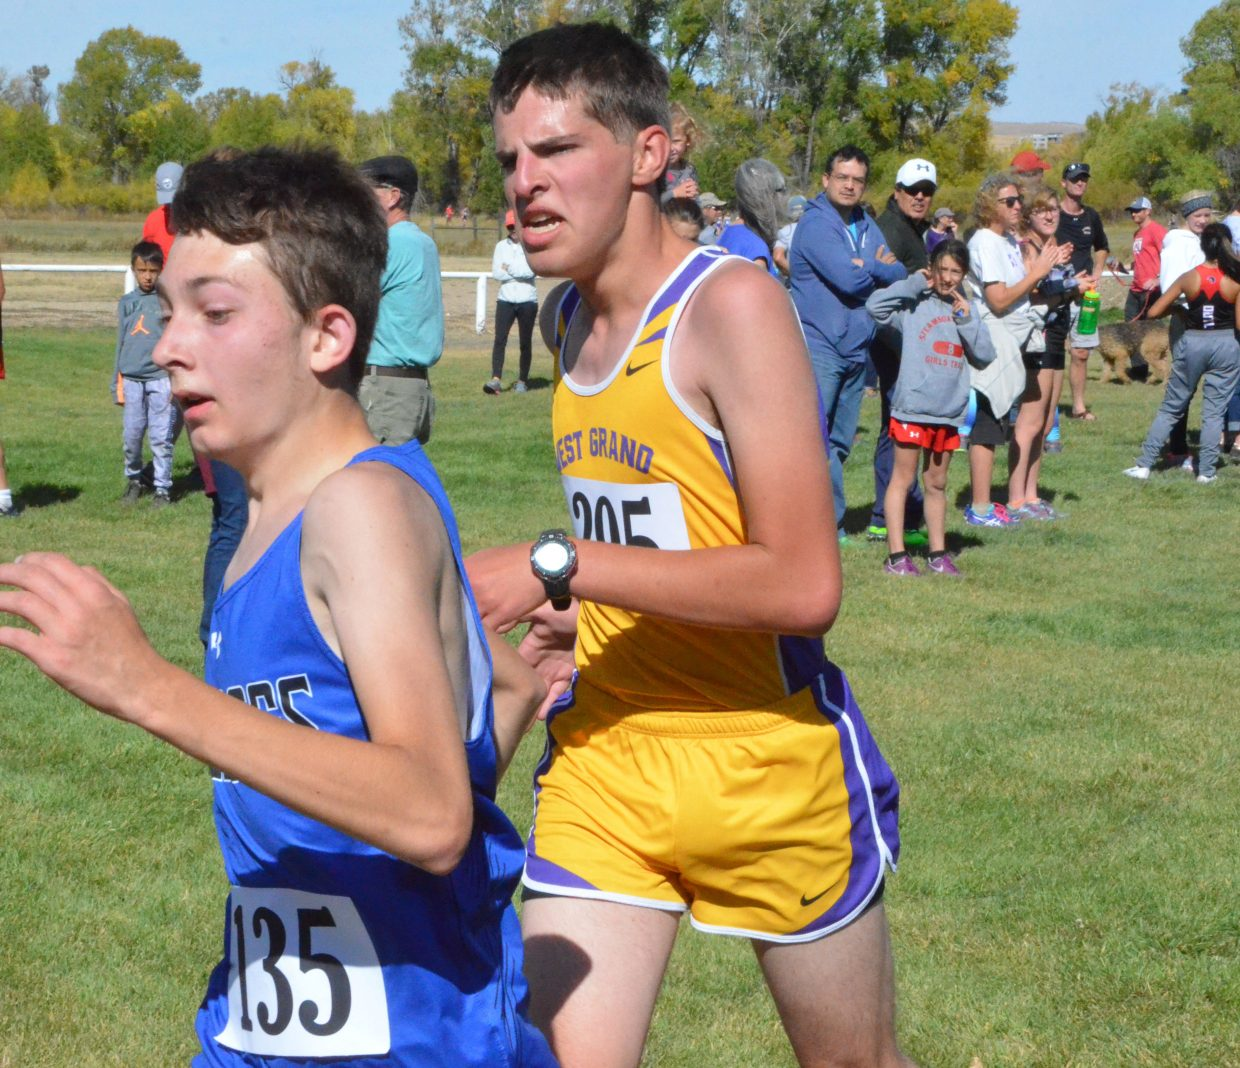 Moffat County High School's Chase Lorio sneaks past the West Grand competition at the finish line during Saturday's MCHS Invitational.